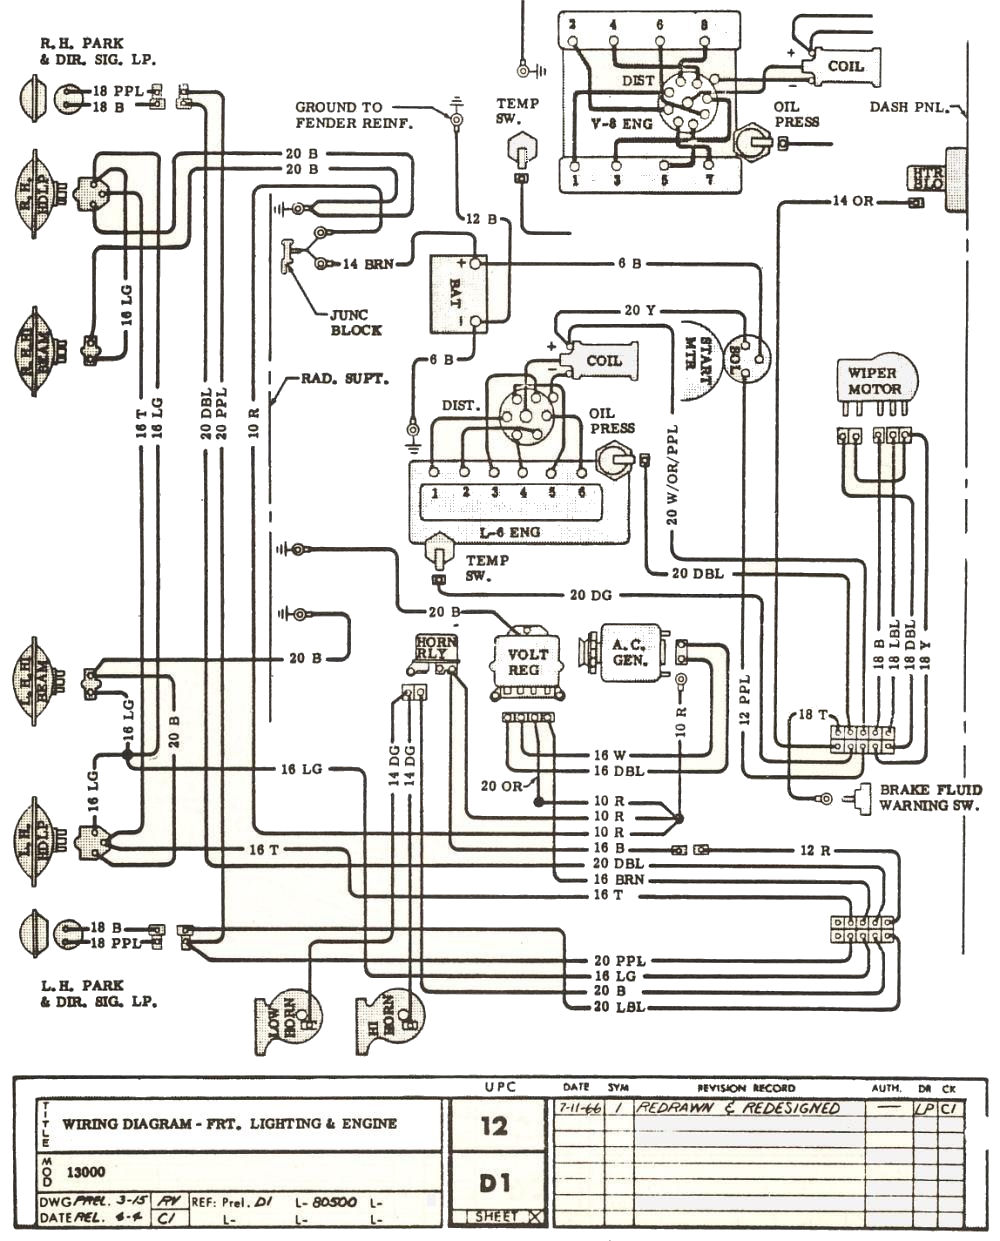 [WRG-7159] 67 Chevelle Dash Wiring Diagram